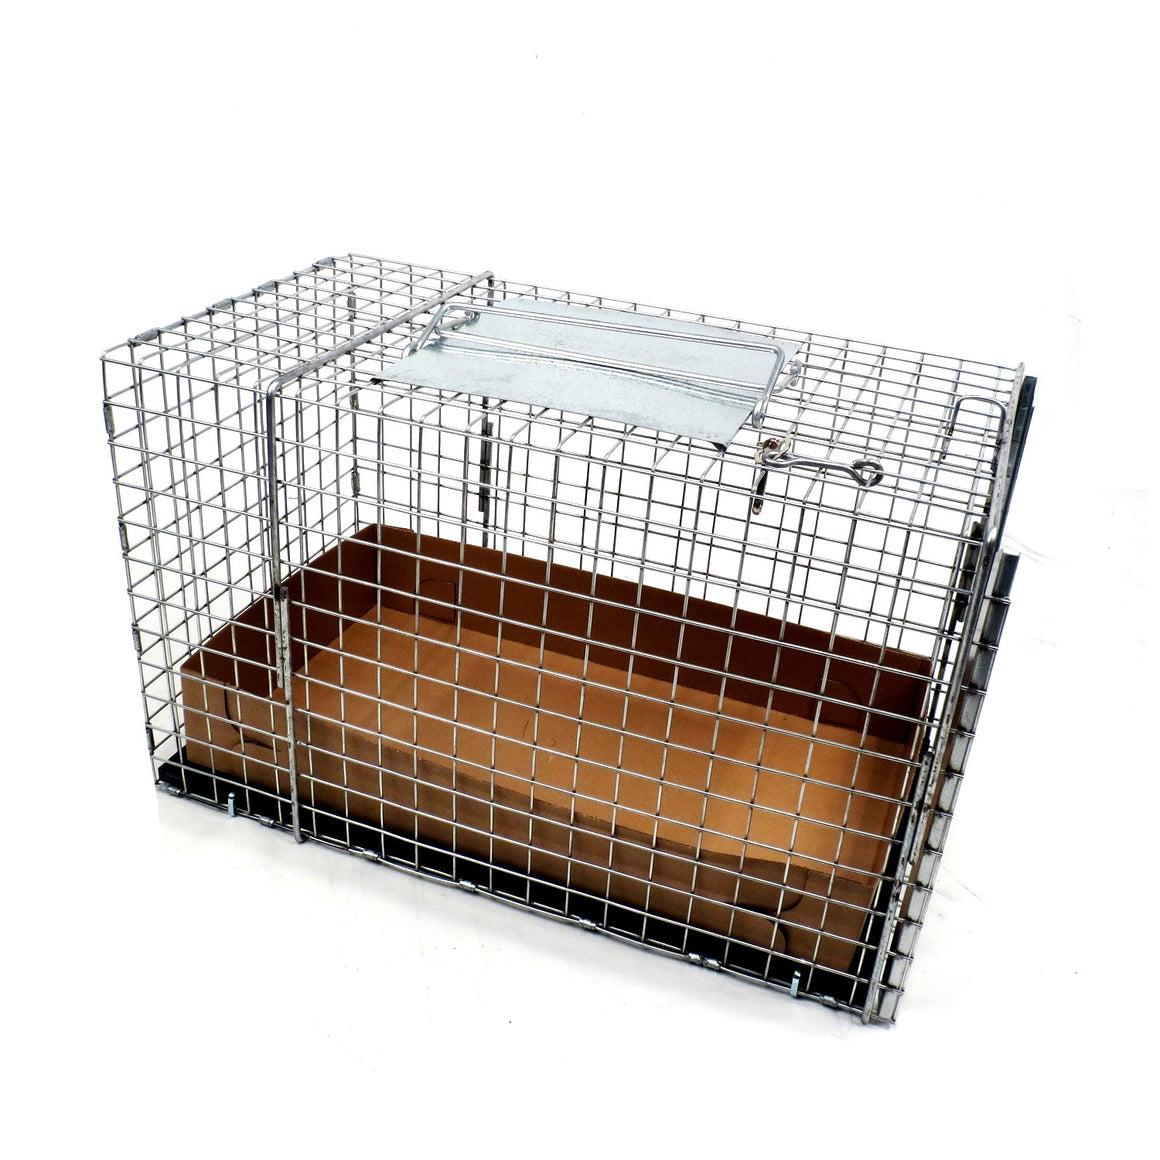 Tomahawk Disposable Litter Trays